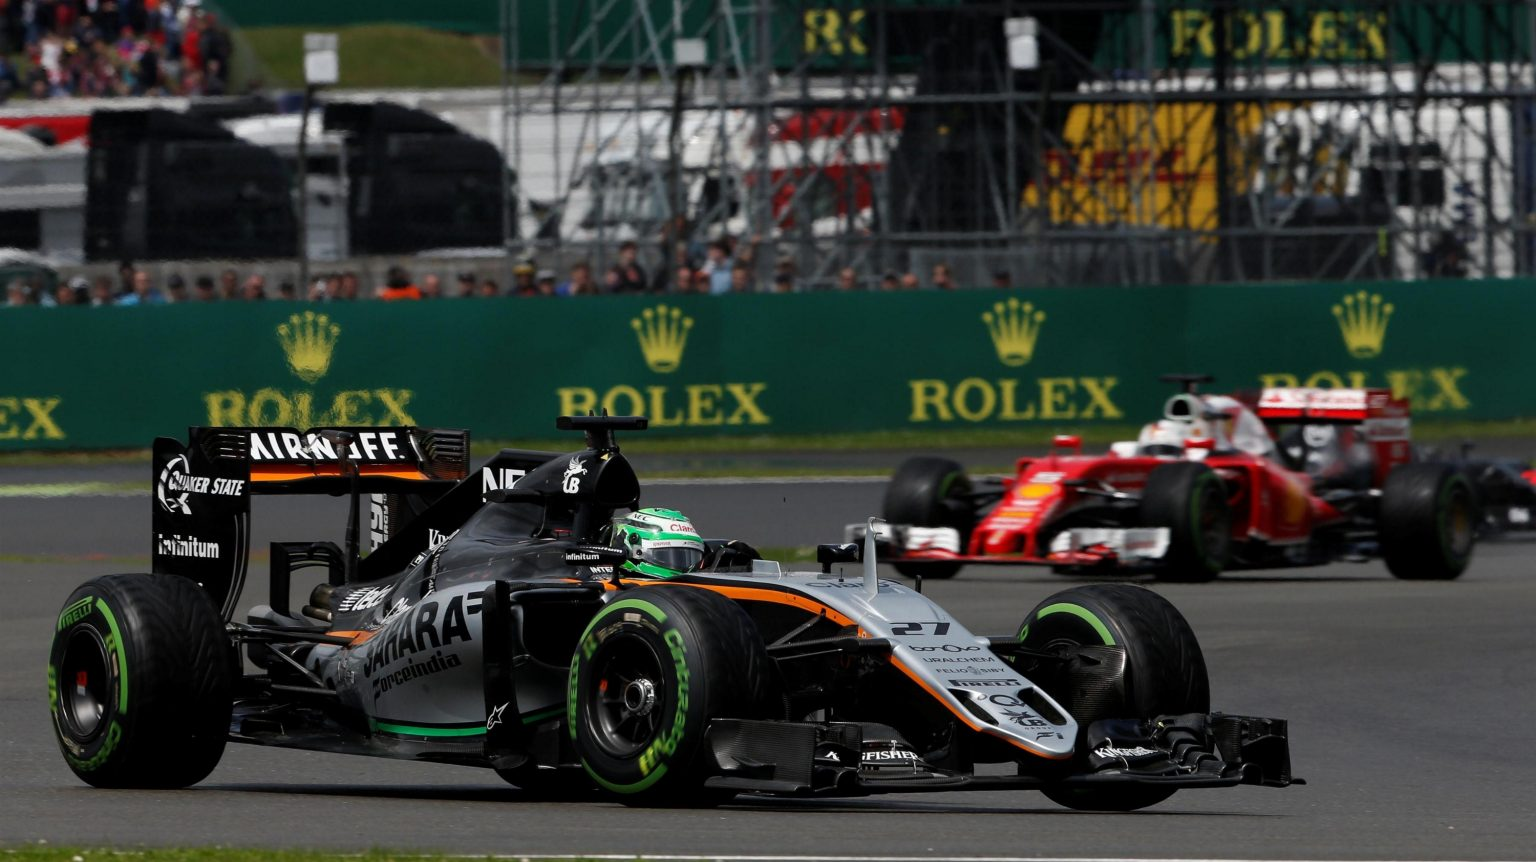 Nico in his Force India